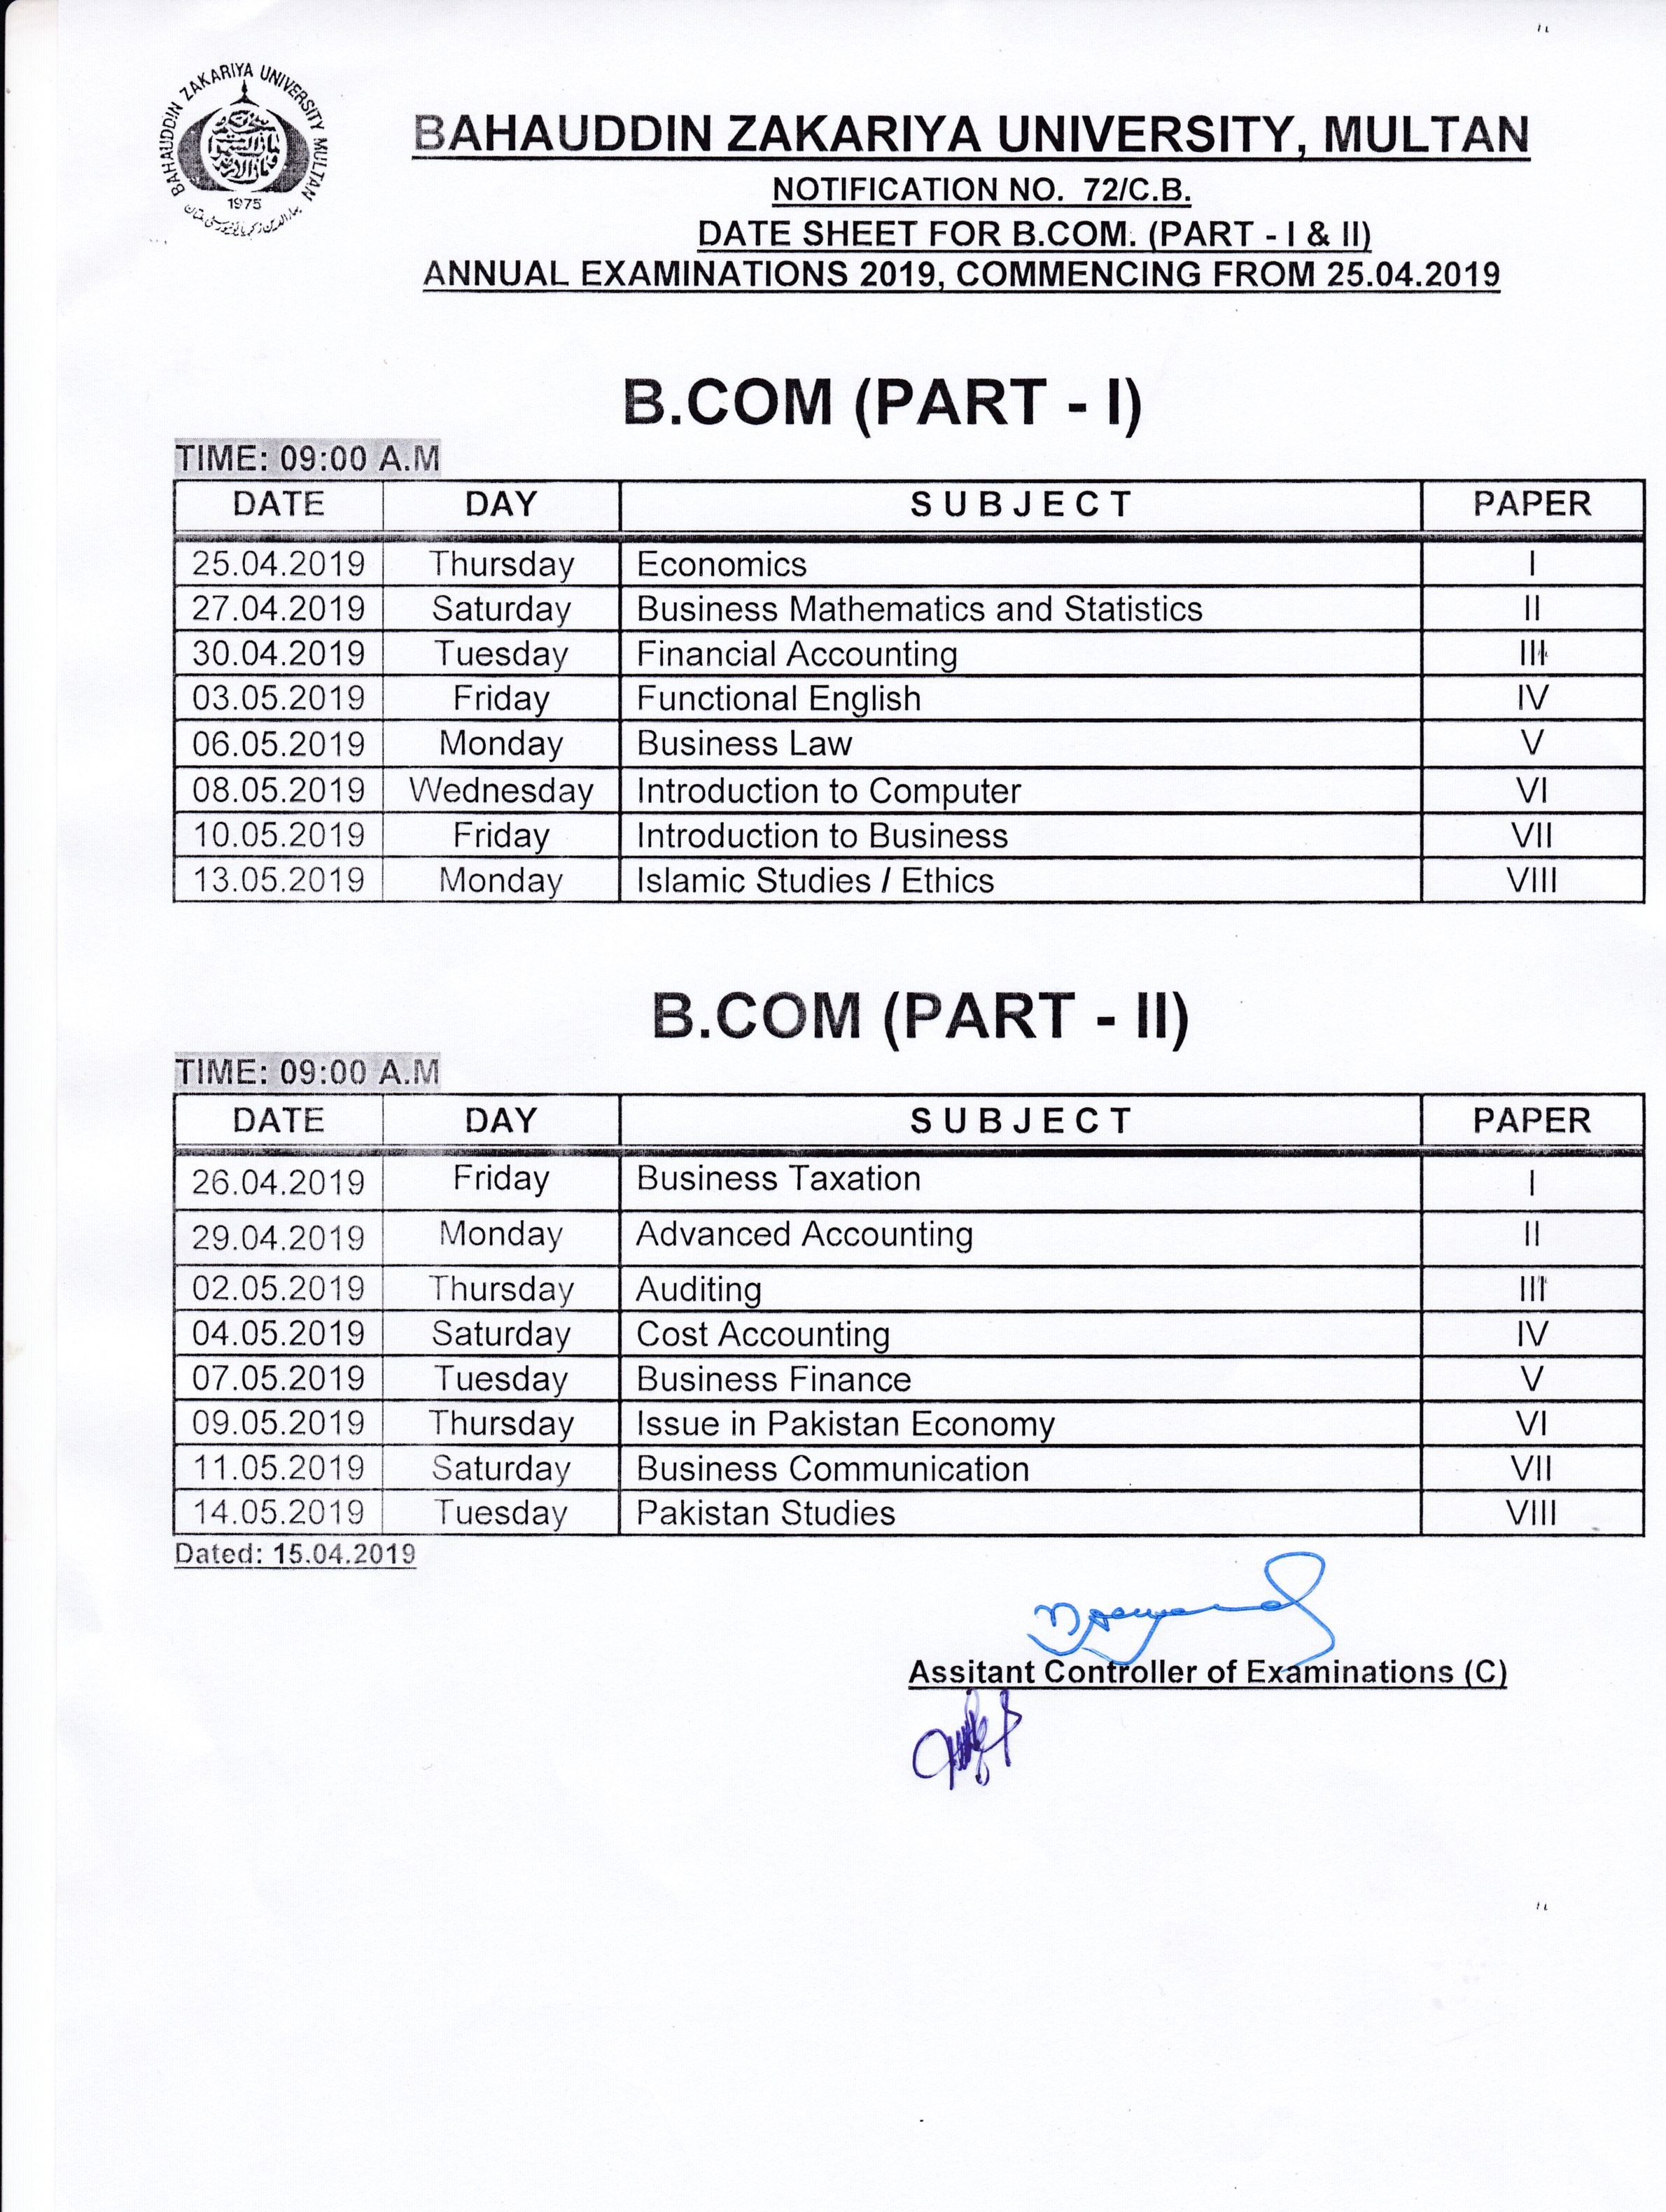 Date Sheet for B COM (PART I& II) Annual Examinations 2019